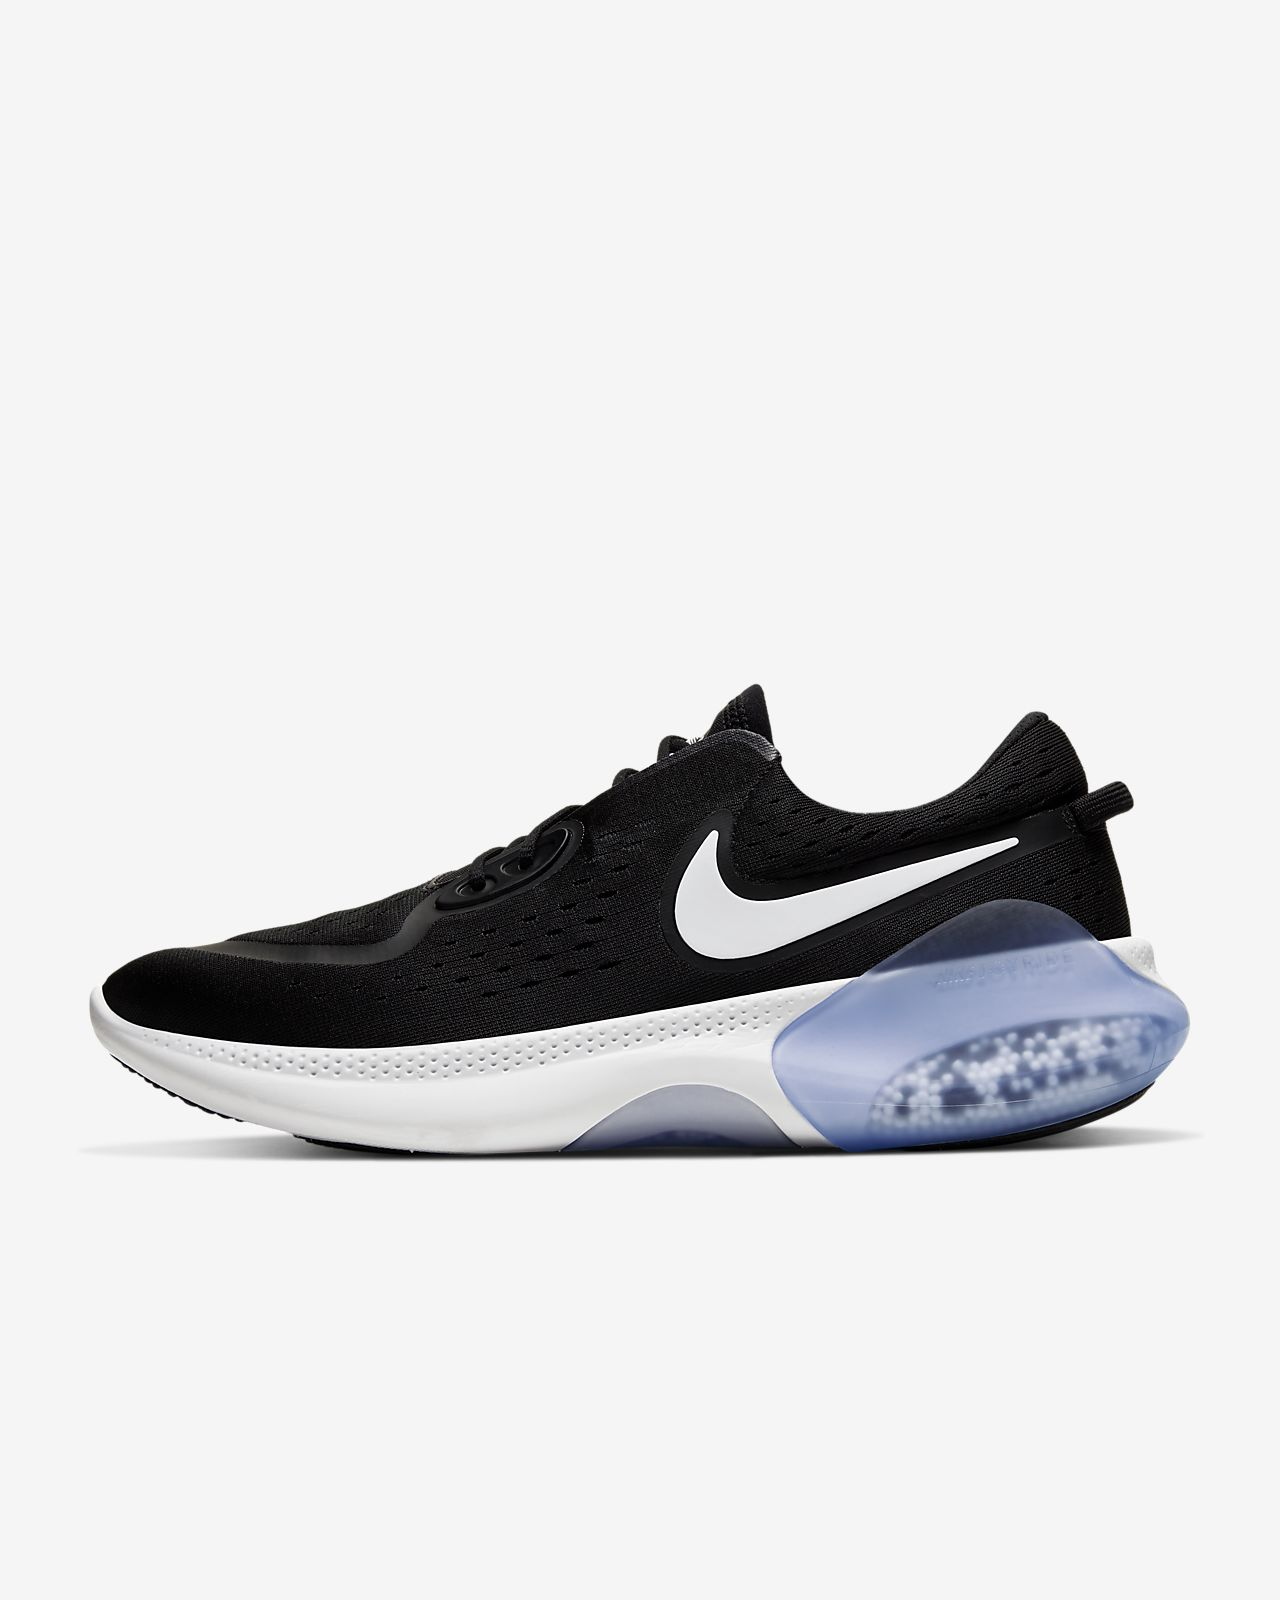 nike sko Udsalg sneakers, NIKE PERFORMANCE FREE RUN